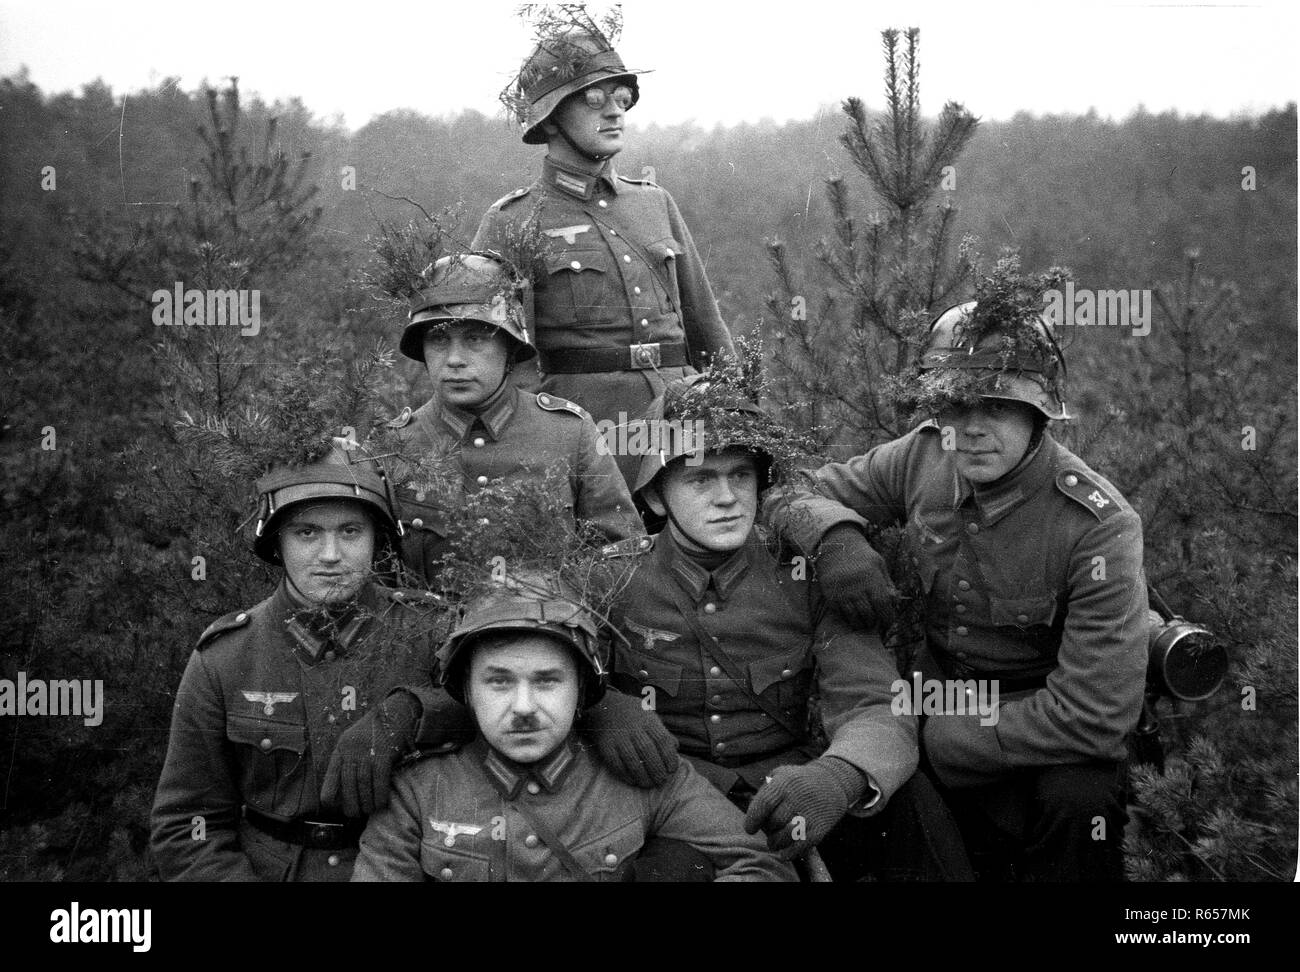 Christmas 1936 German Army Soldiers, Germany - Stock Image